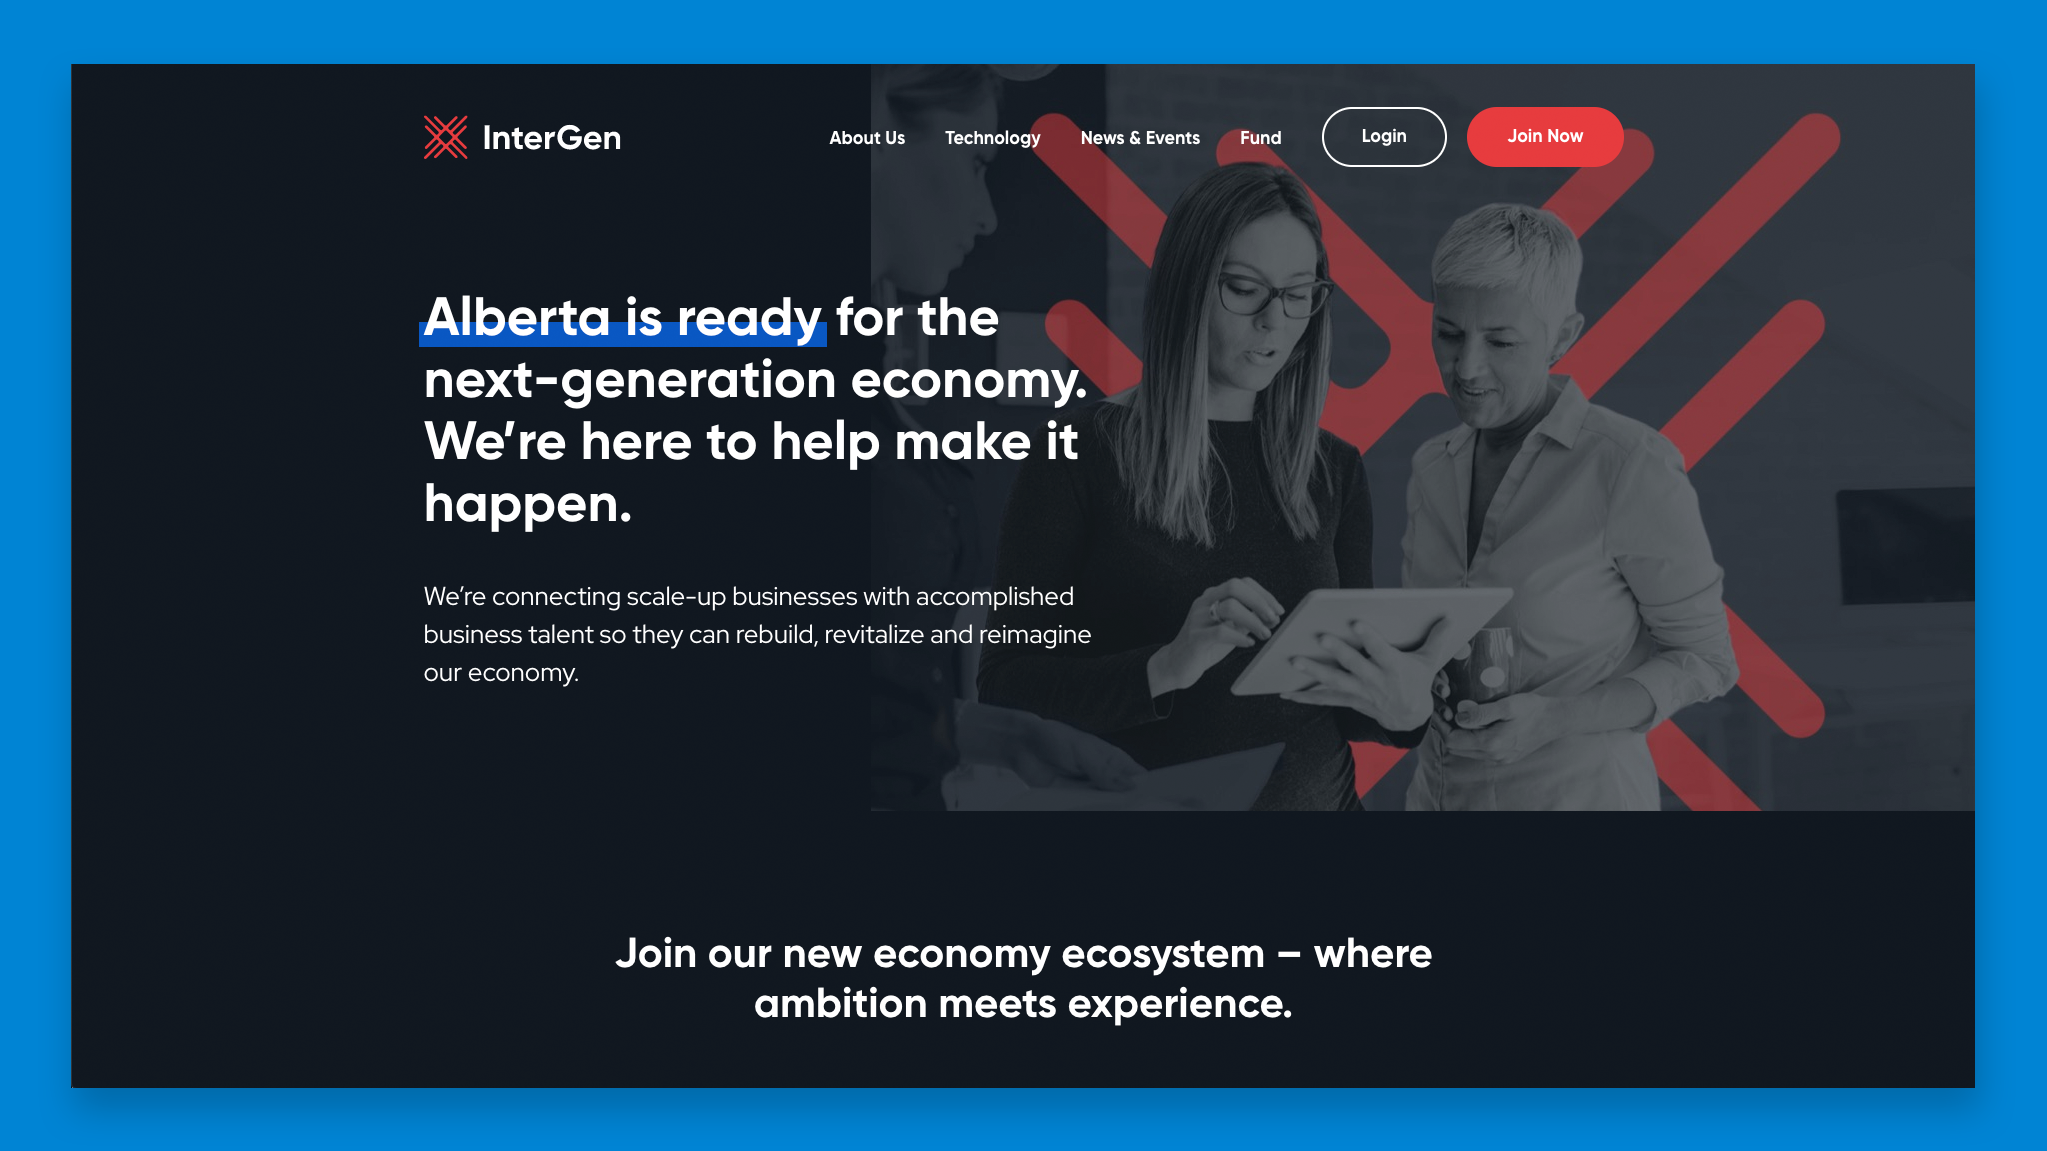 Screenshot of the InterGen website homepage